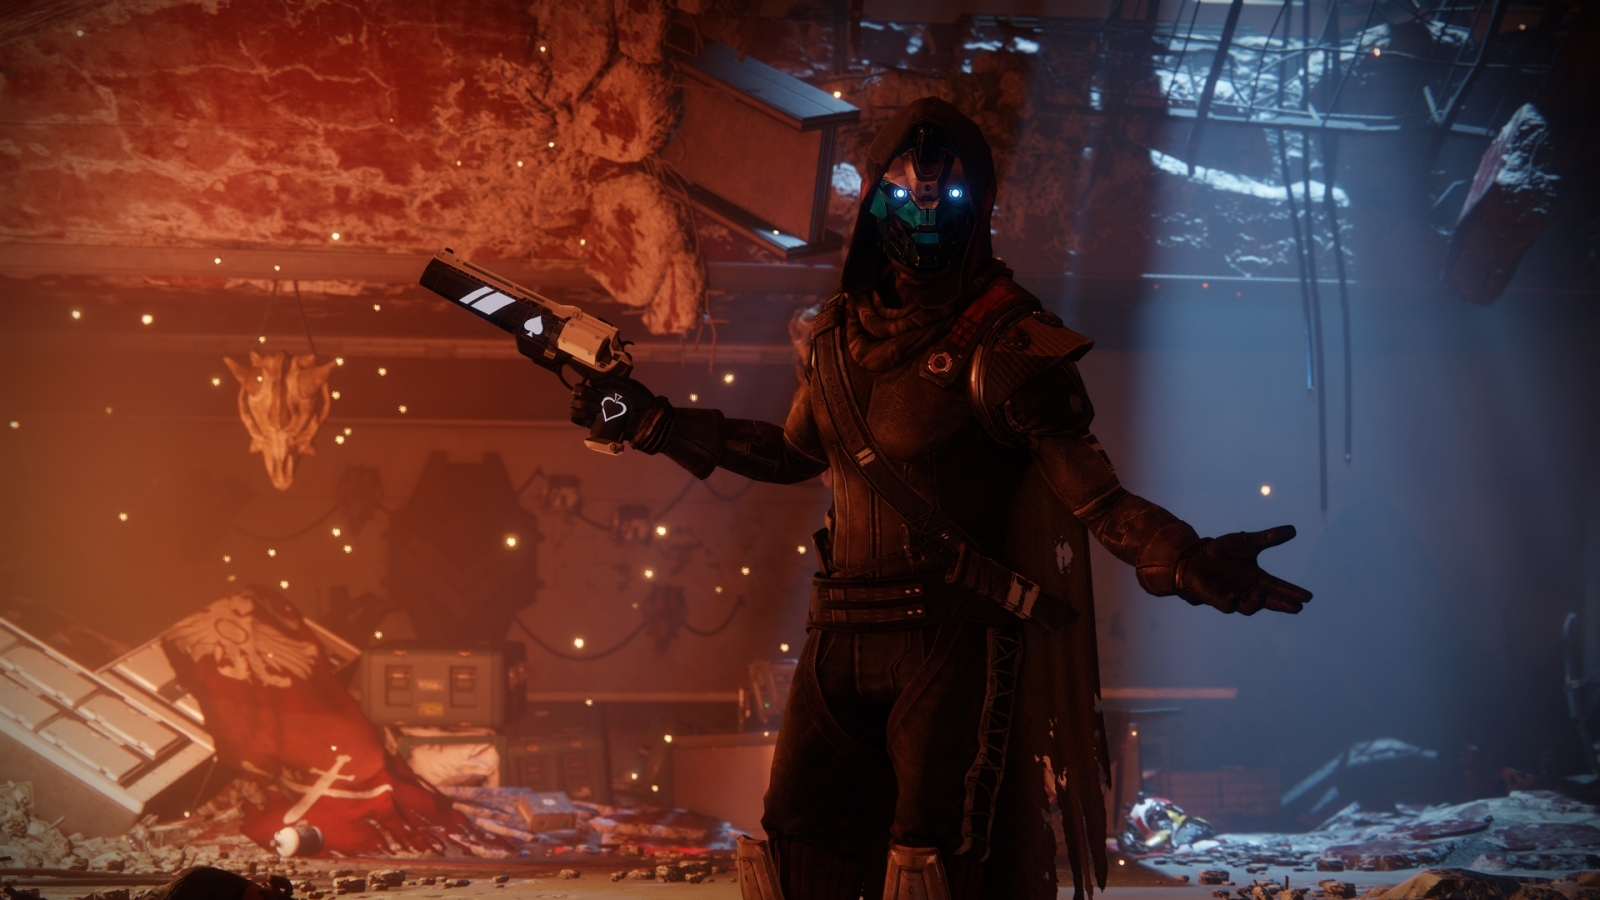 Bungie extends Destiny 2 beta on PS4 and Xbox One